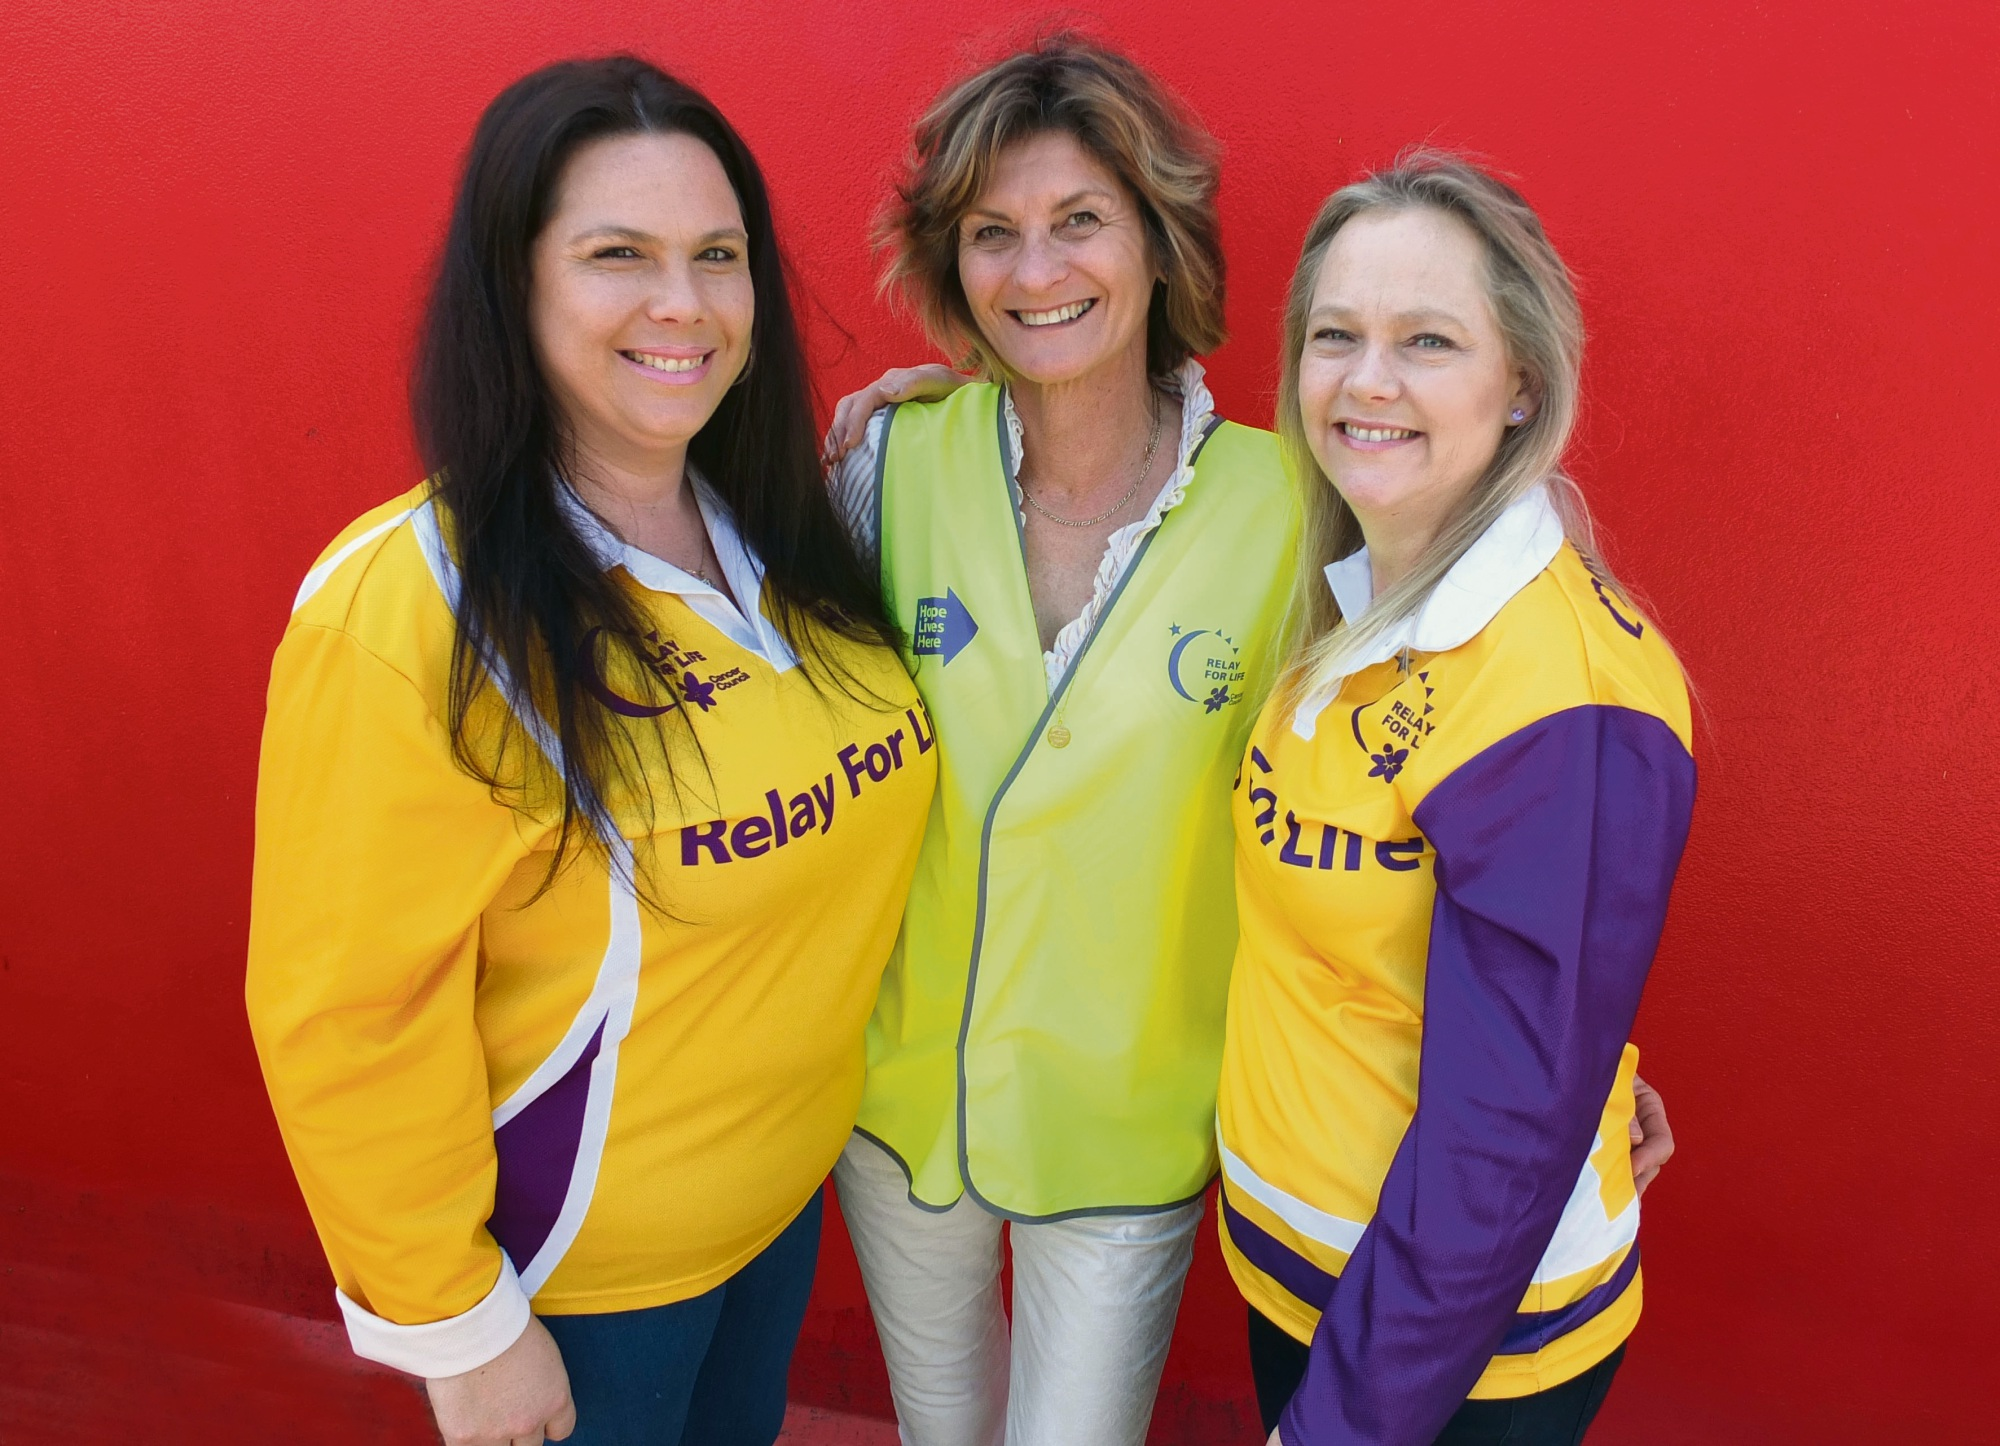 Relay for Life volunteers Kerry Boscarino-Hunter, Vanda Gates and Kim Boscarino.